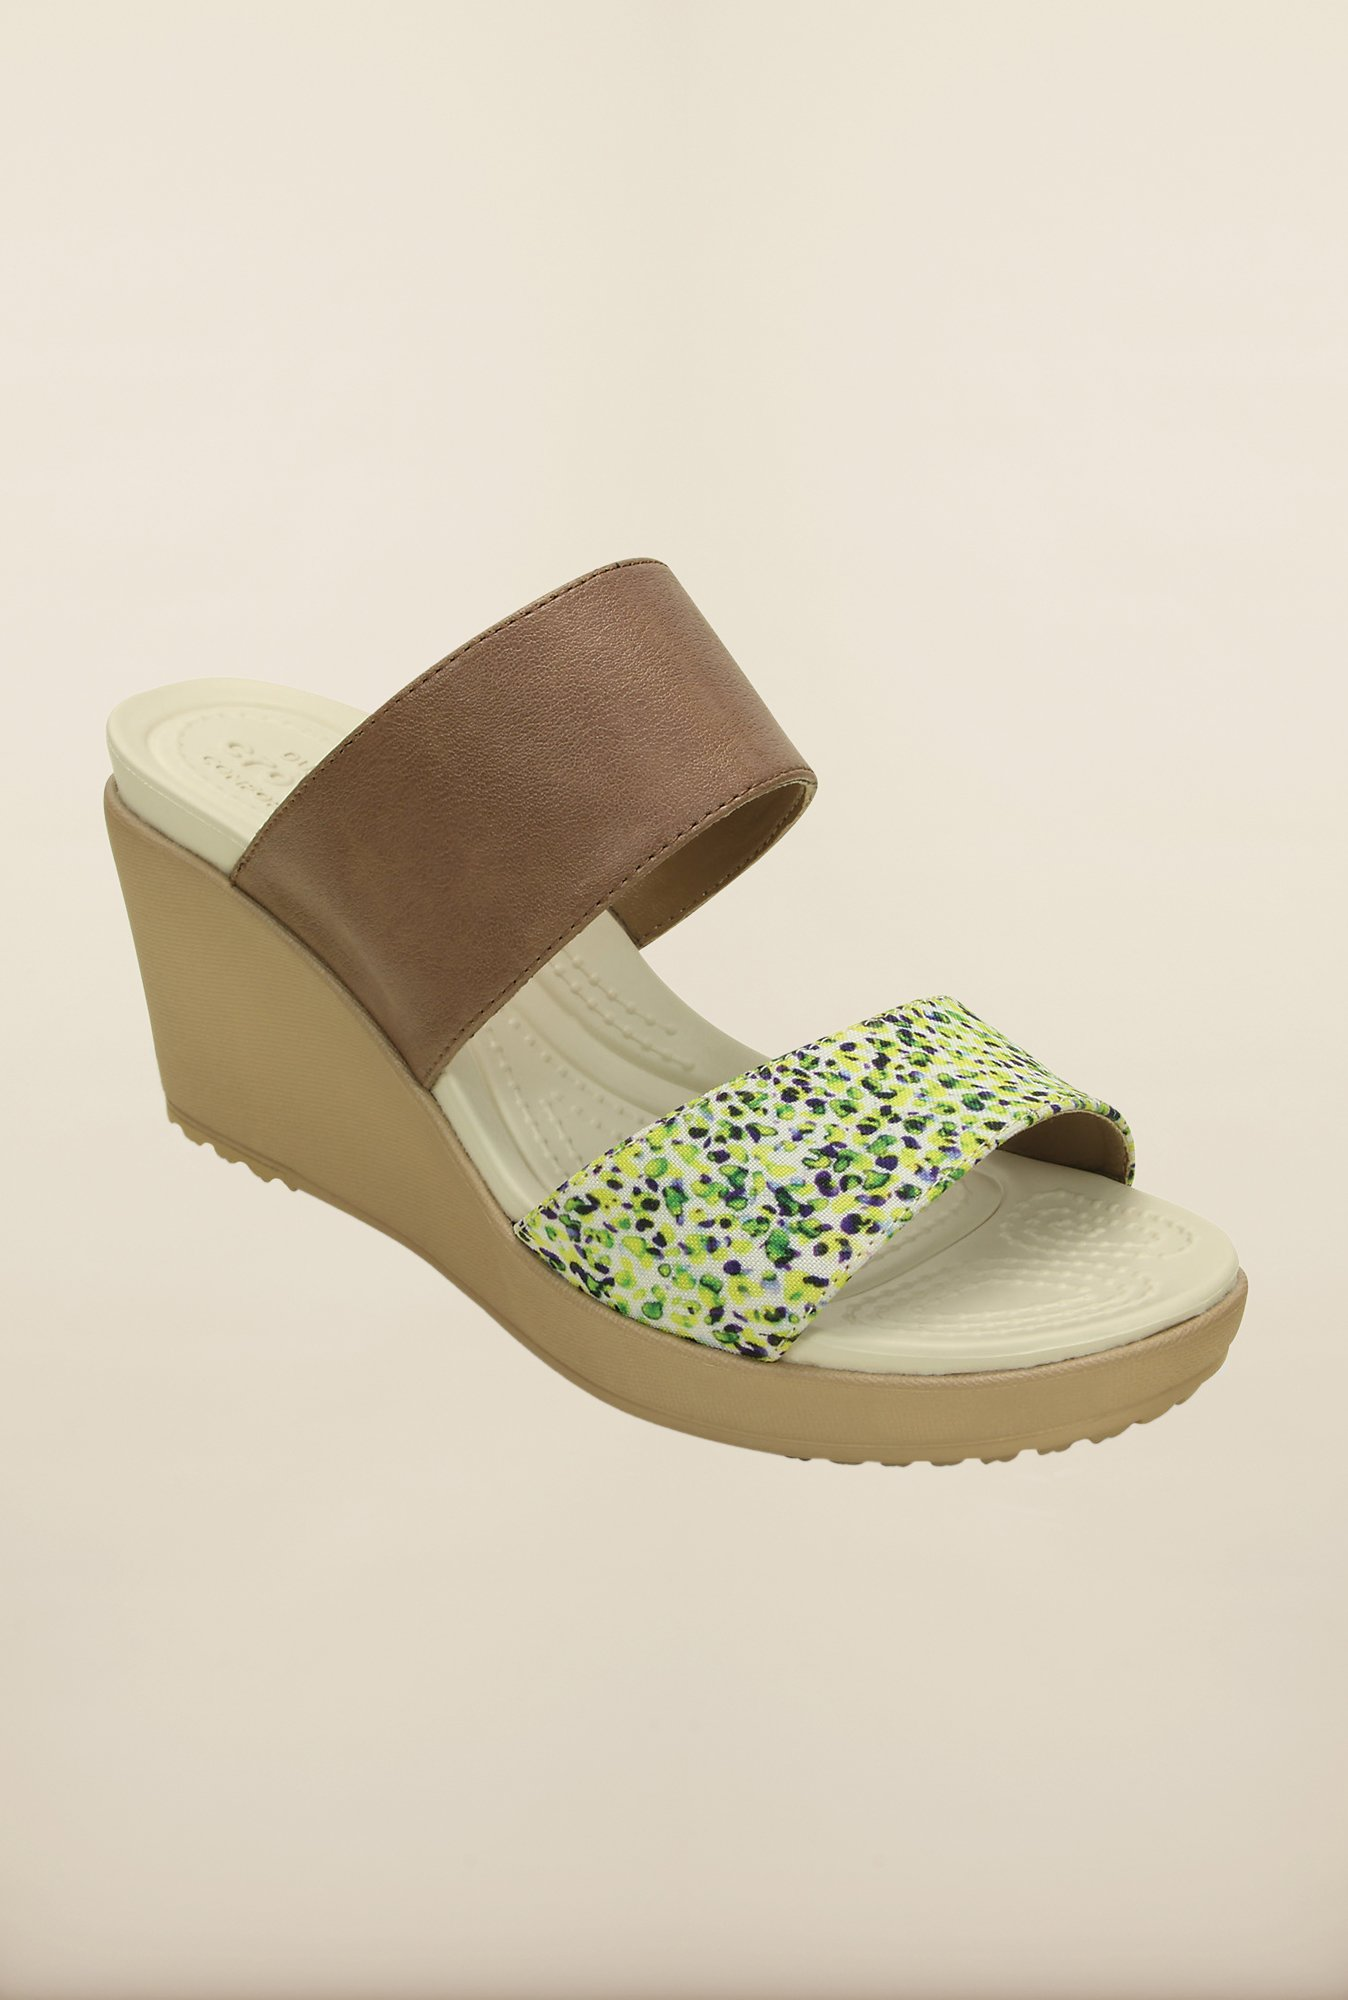 Crocs Leigh II Bronze & Gold Wedges